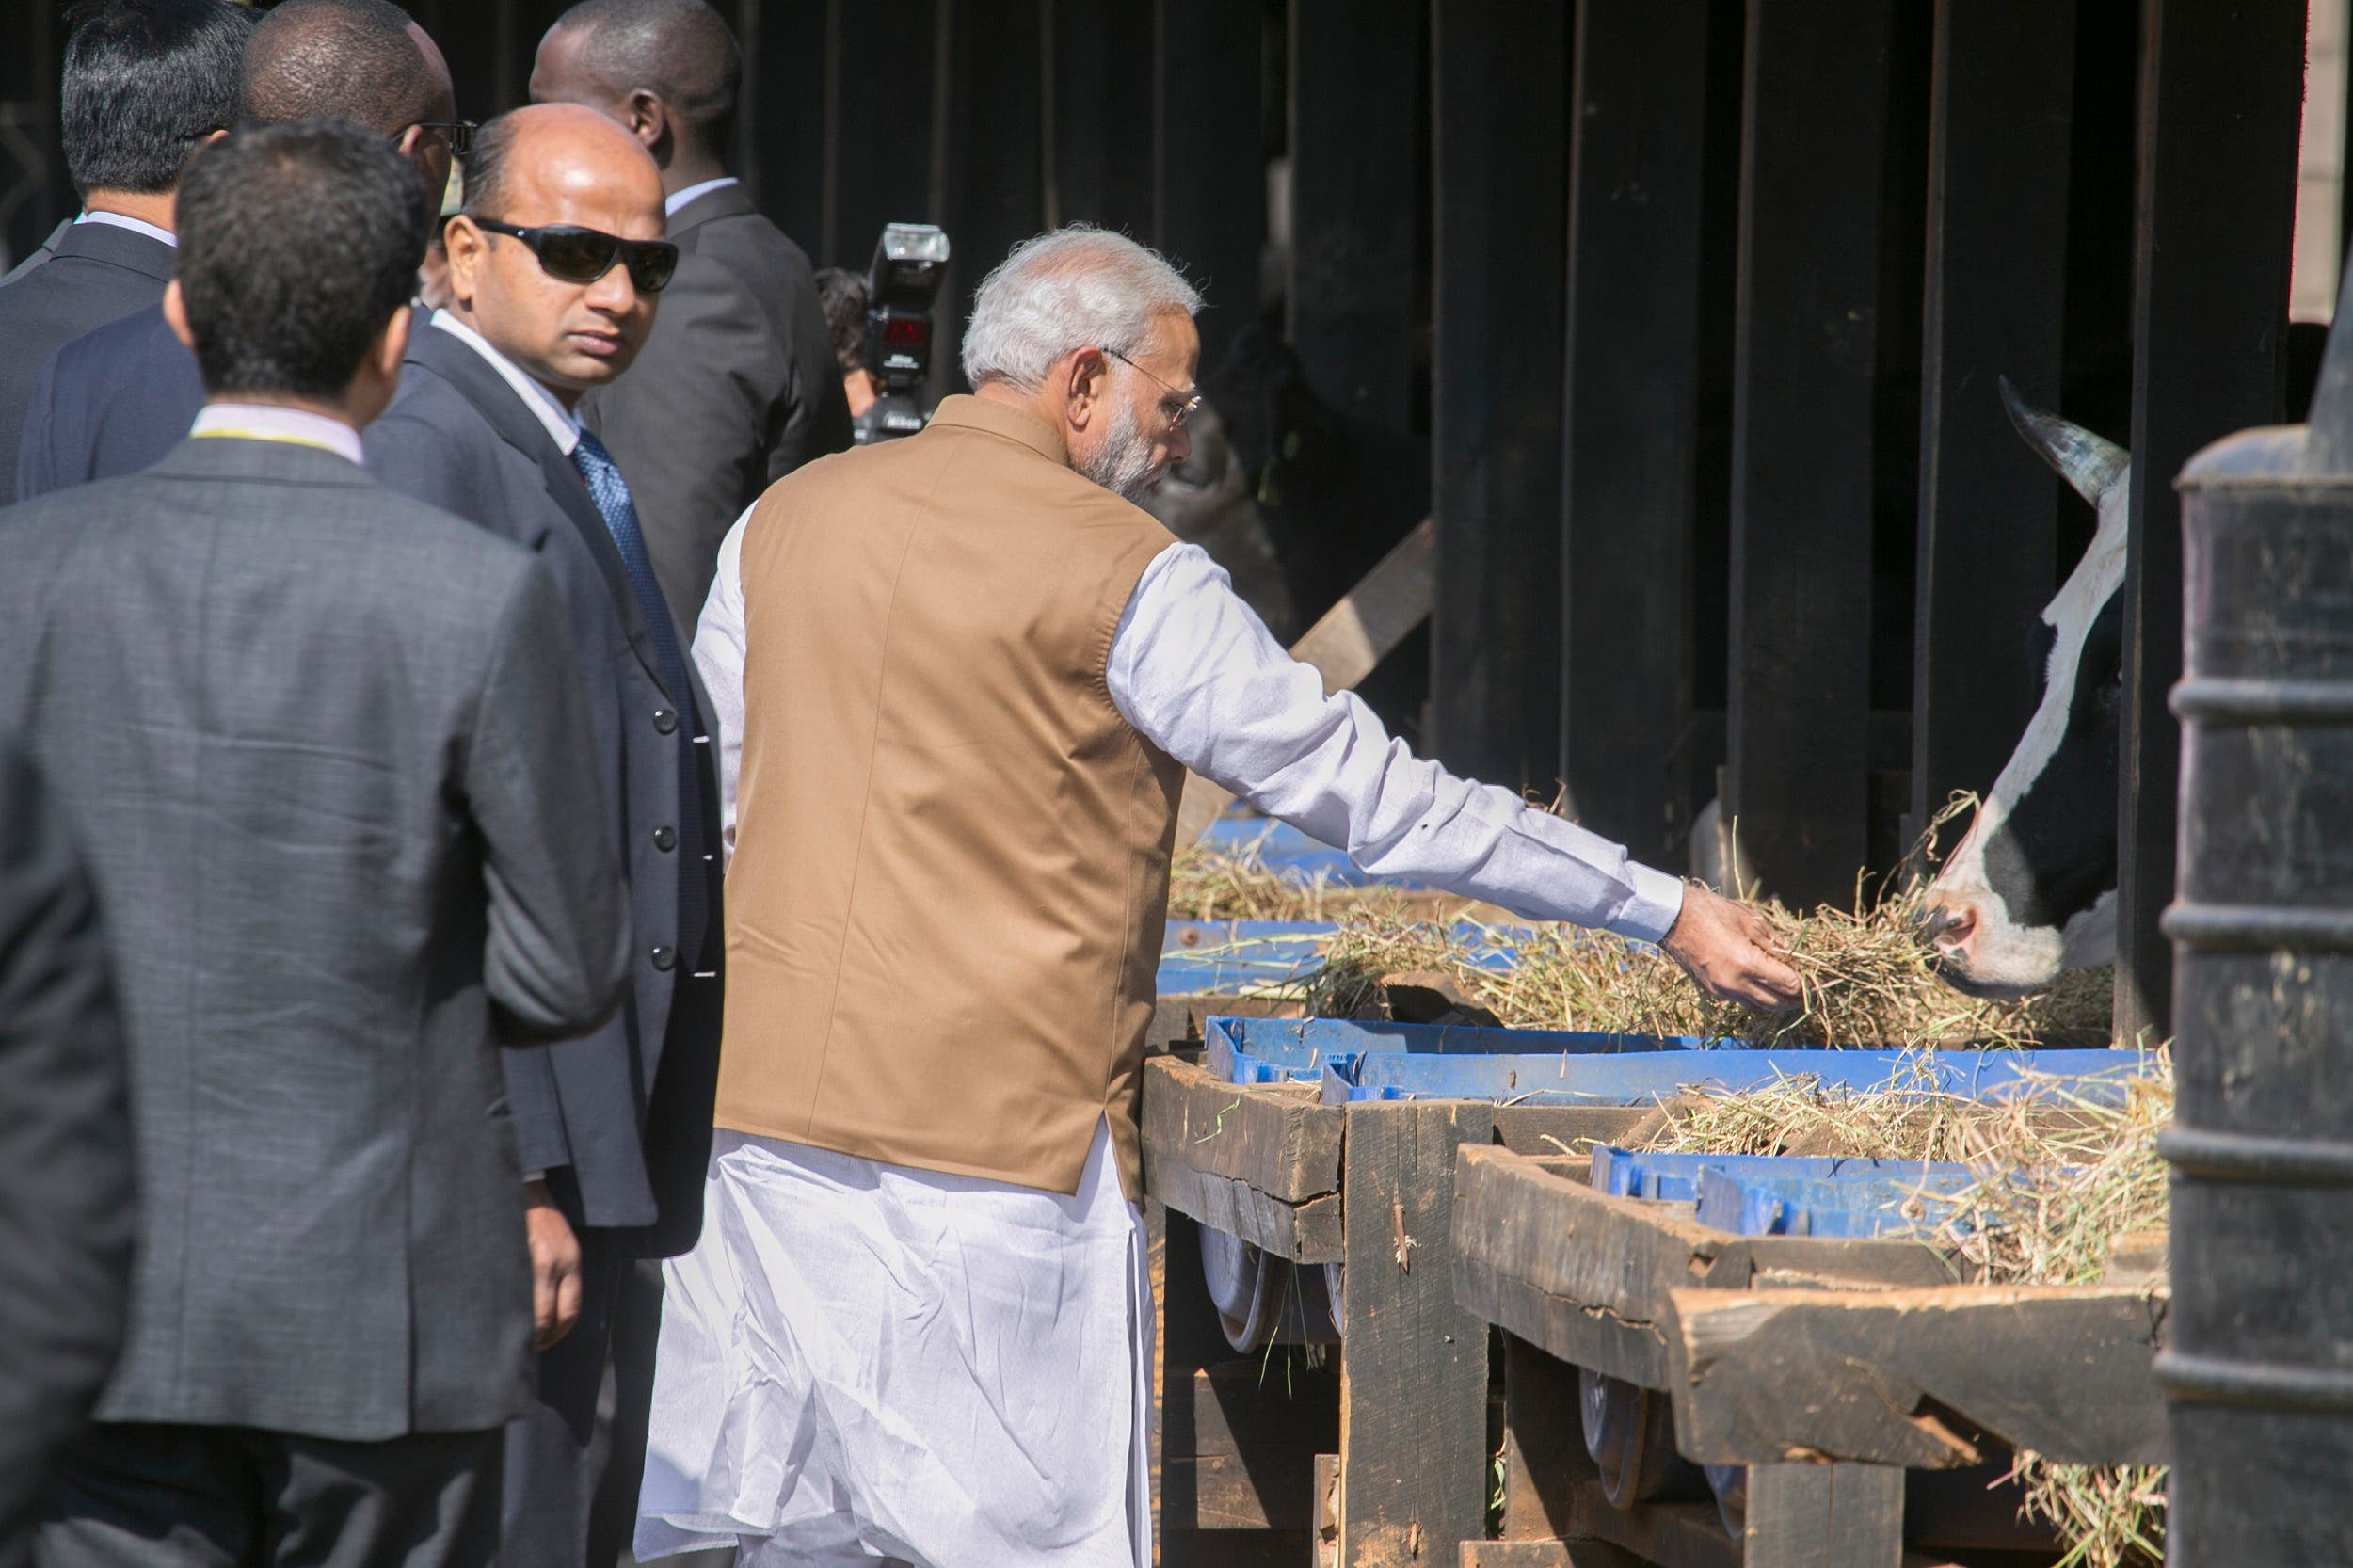 Prime Minister Modi feeds a cow as he visits the residents of Rweru in Bugesera District of Rwanda on July 24 ,2014. Modi gifted some cows to residents of Mweru, to support President Paul Kagame's initiative to reduce poverty and childhood malnutrition in Rwanda. (AP)